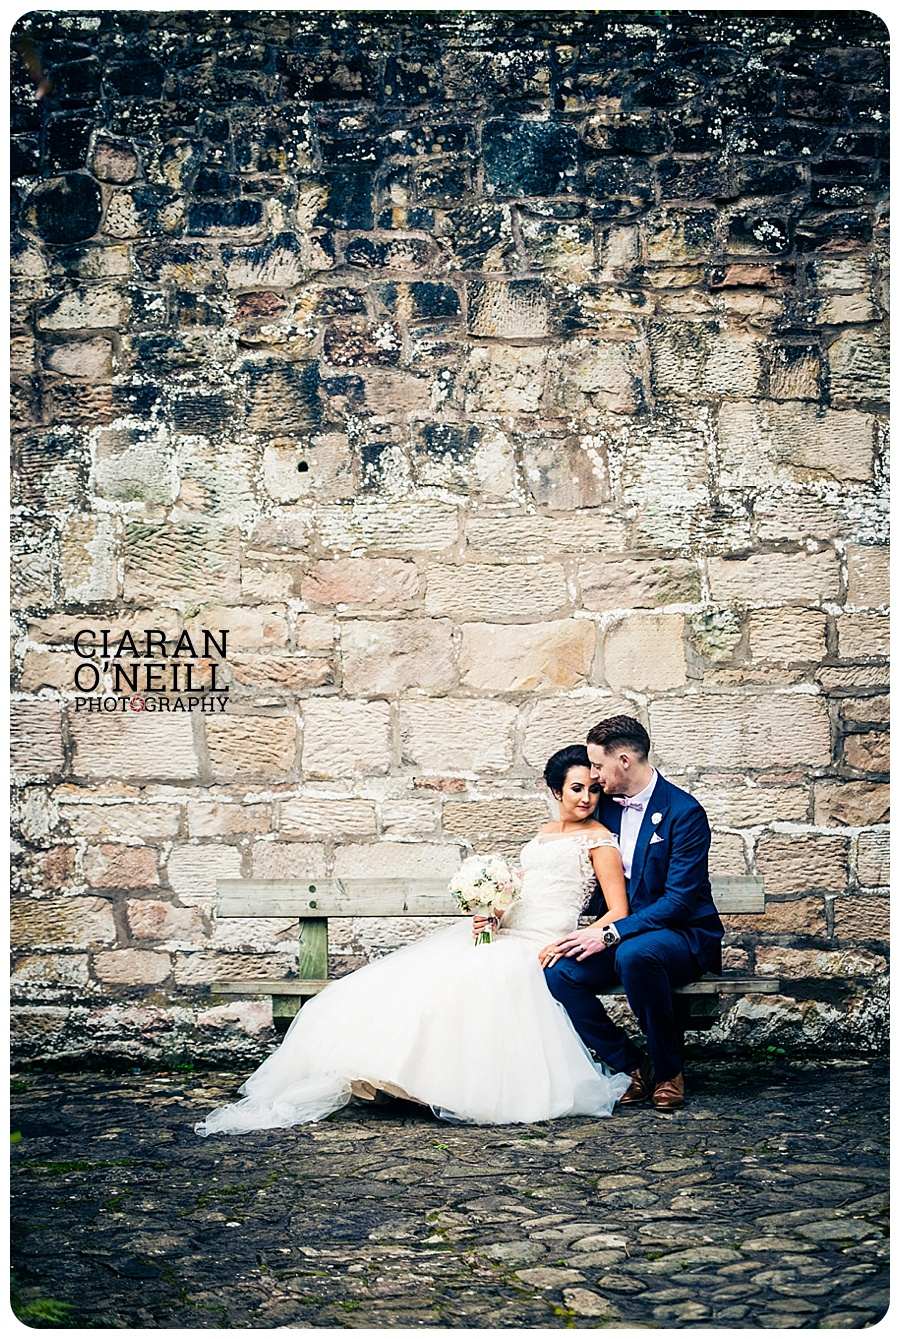 Janet & Seamus's wedding at the Greenvale Hotel by Ciaran O'Neill Photography 22